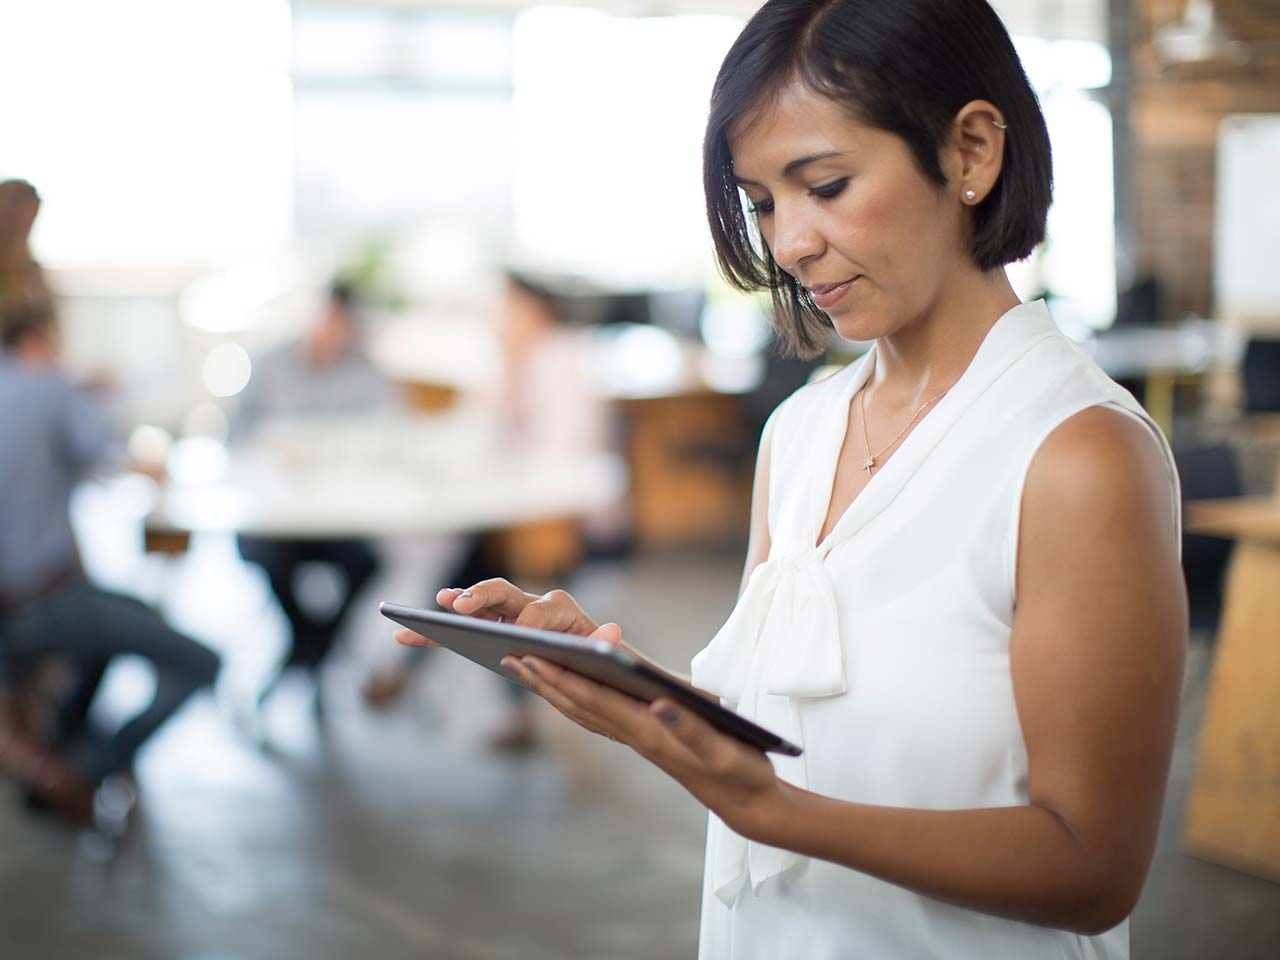 Woman scrolling on a tablet